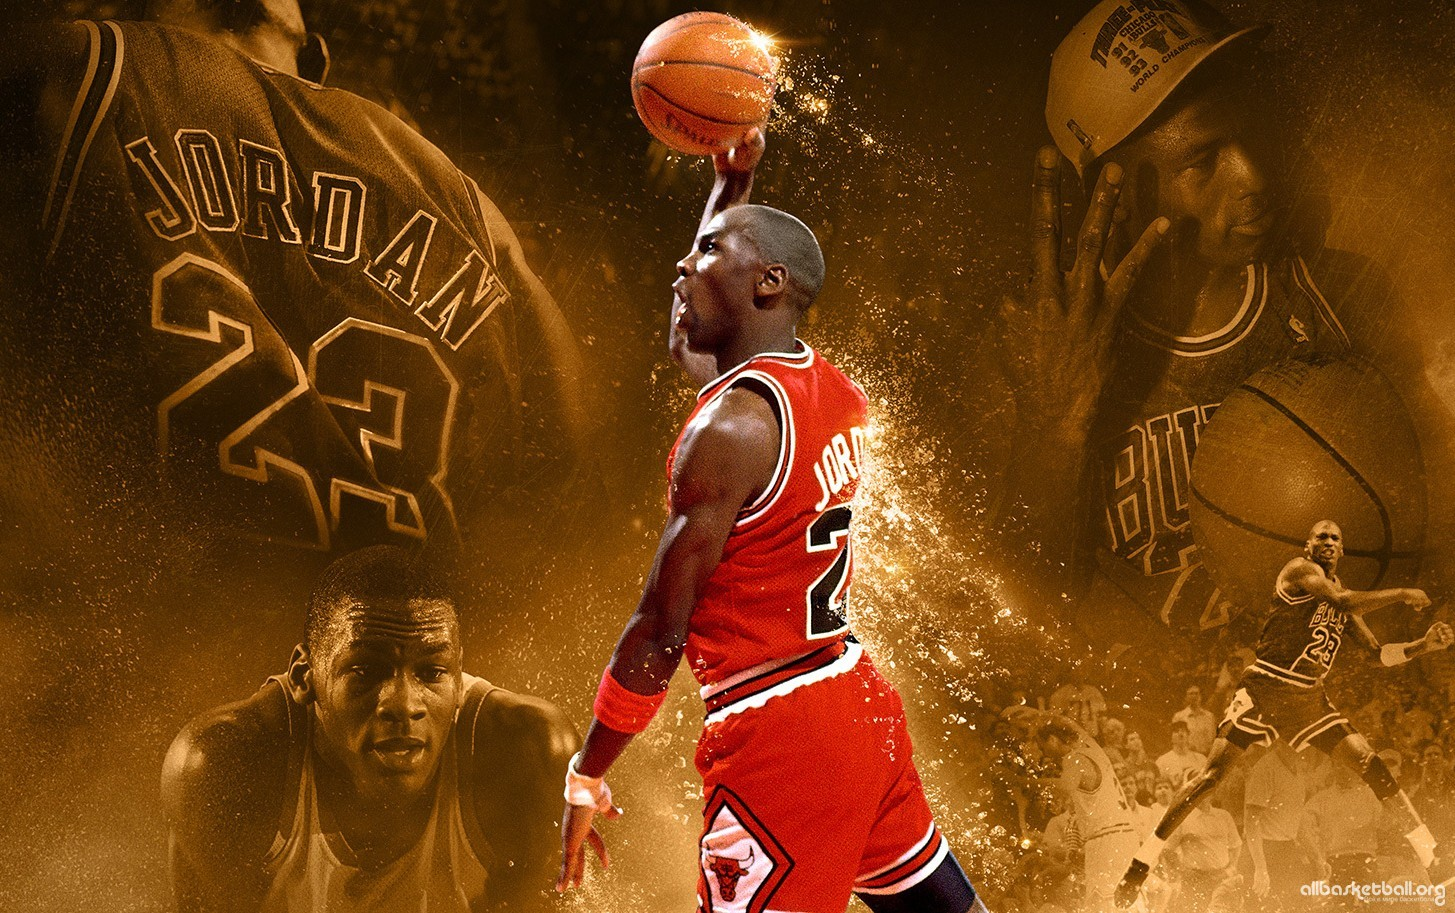 50 Nba Wallpapers Download Free Hd Backgrounds For: NBA 2K16 HD Wallpapers Free Download